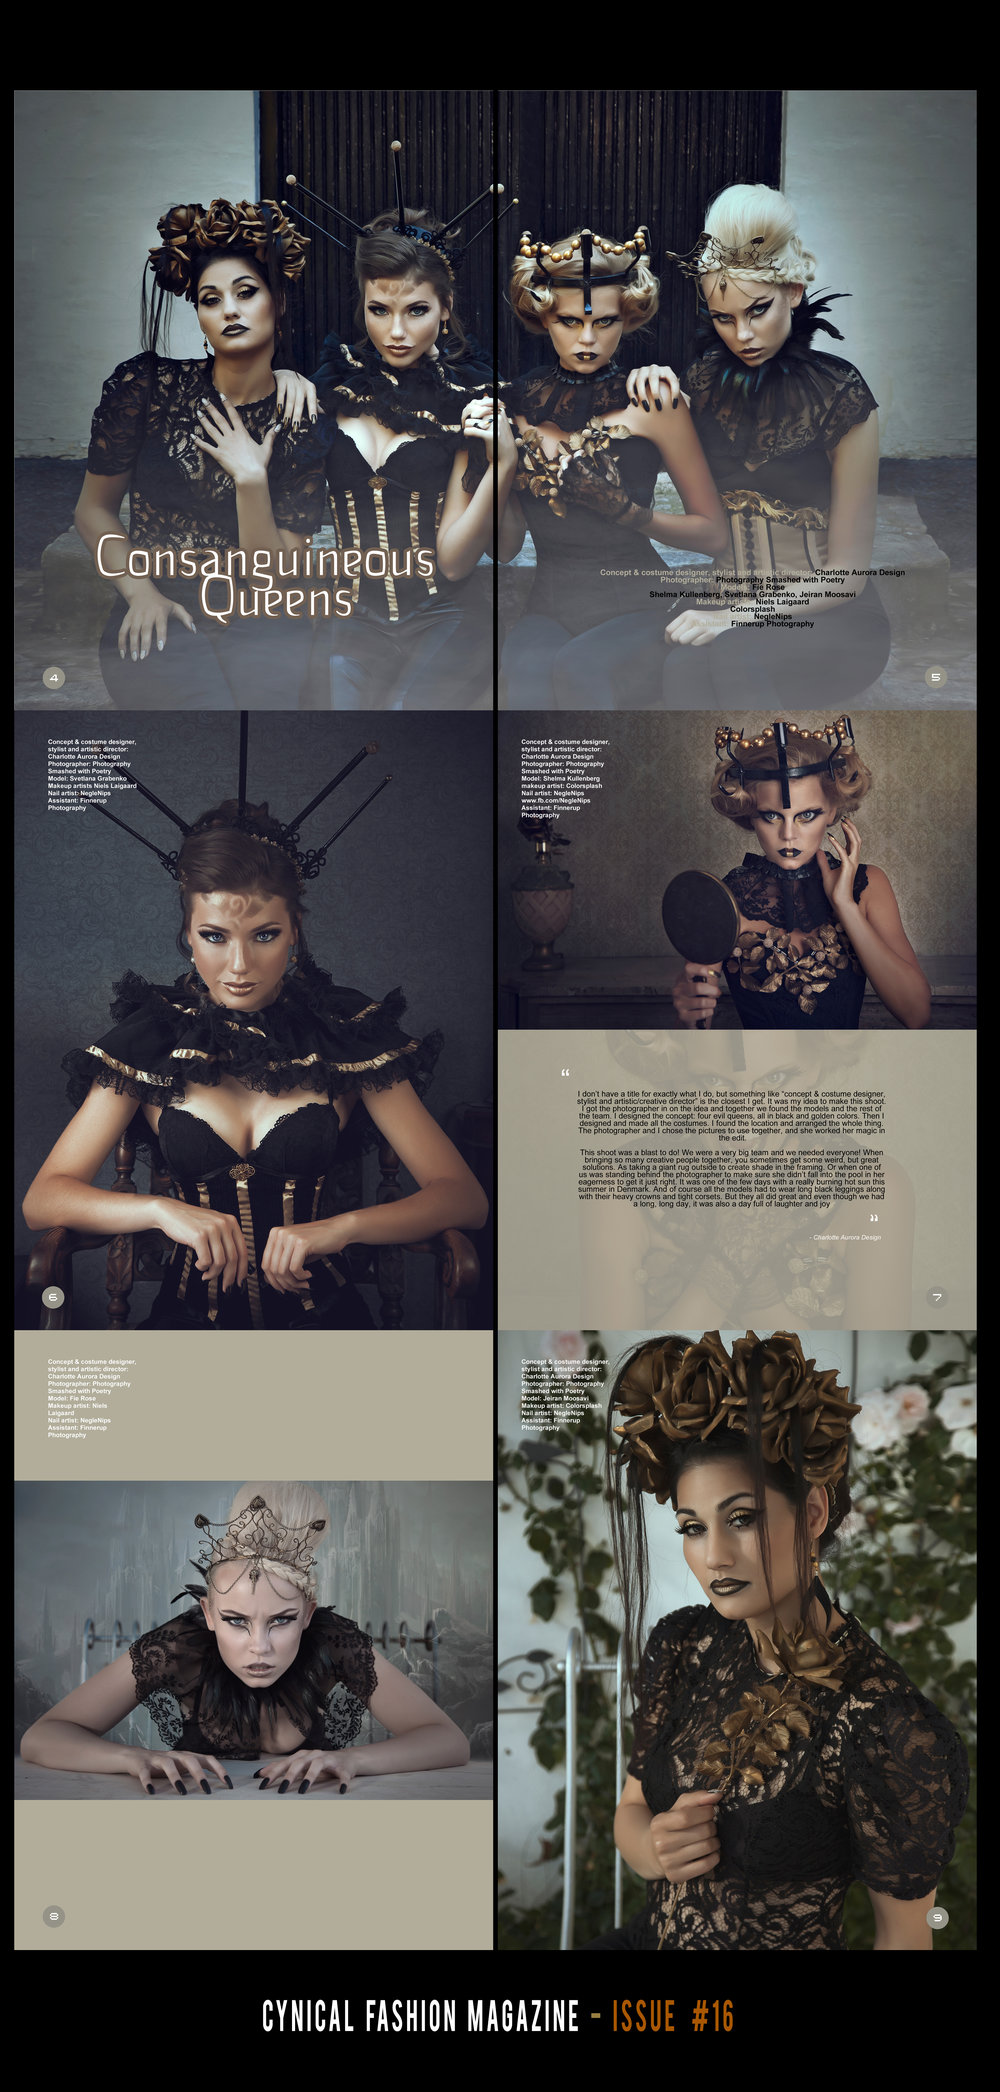 Grace Almera Cynical Fashion Magazine Royal Queen.jpg